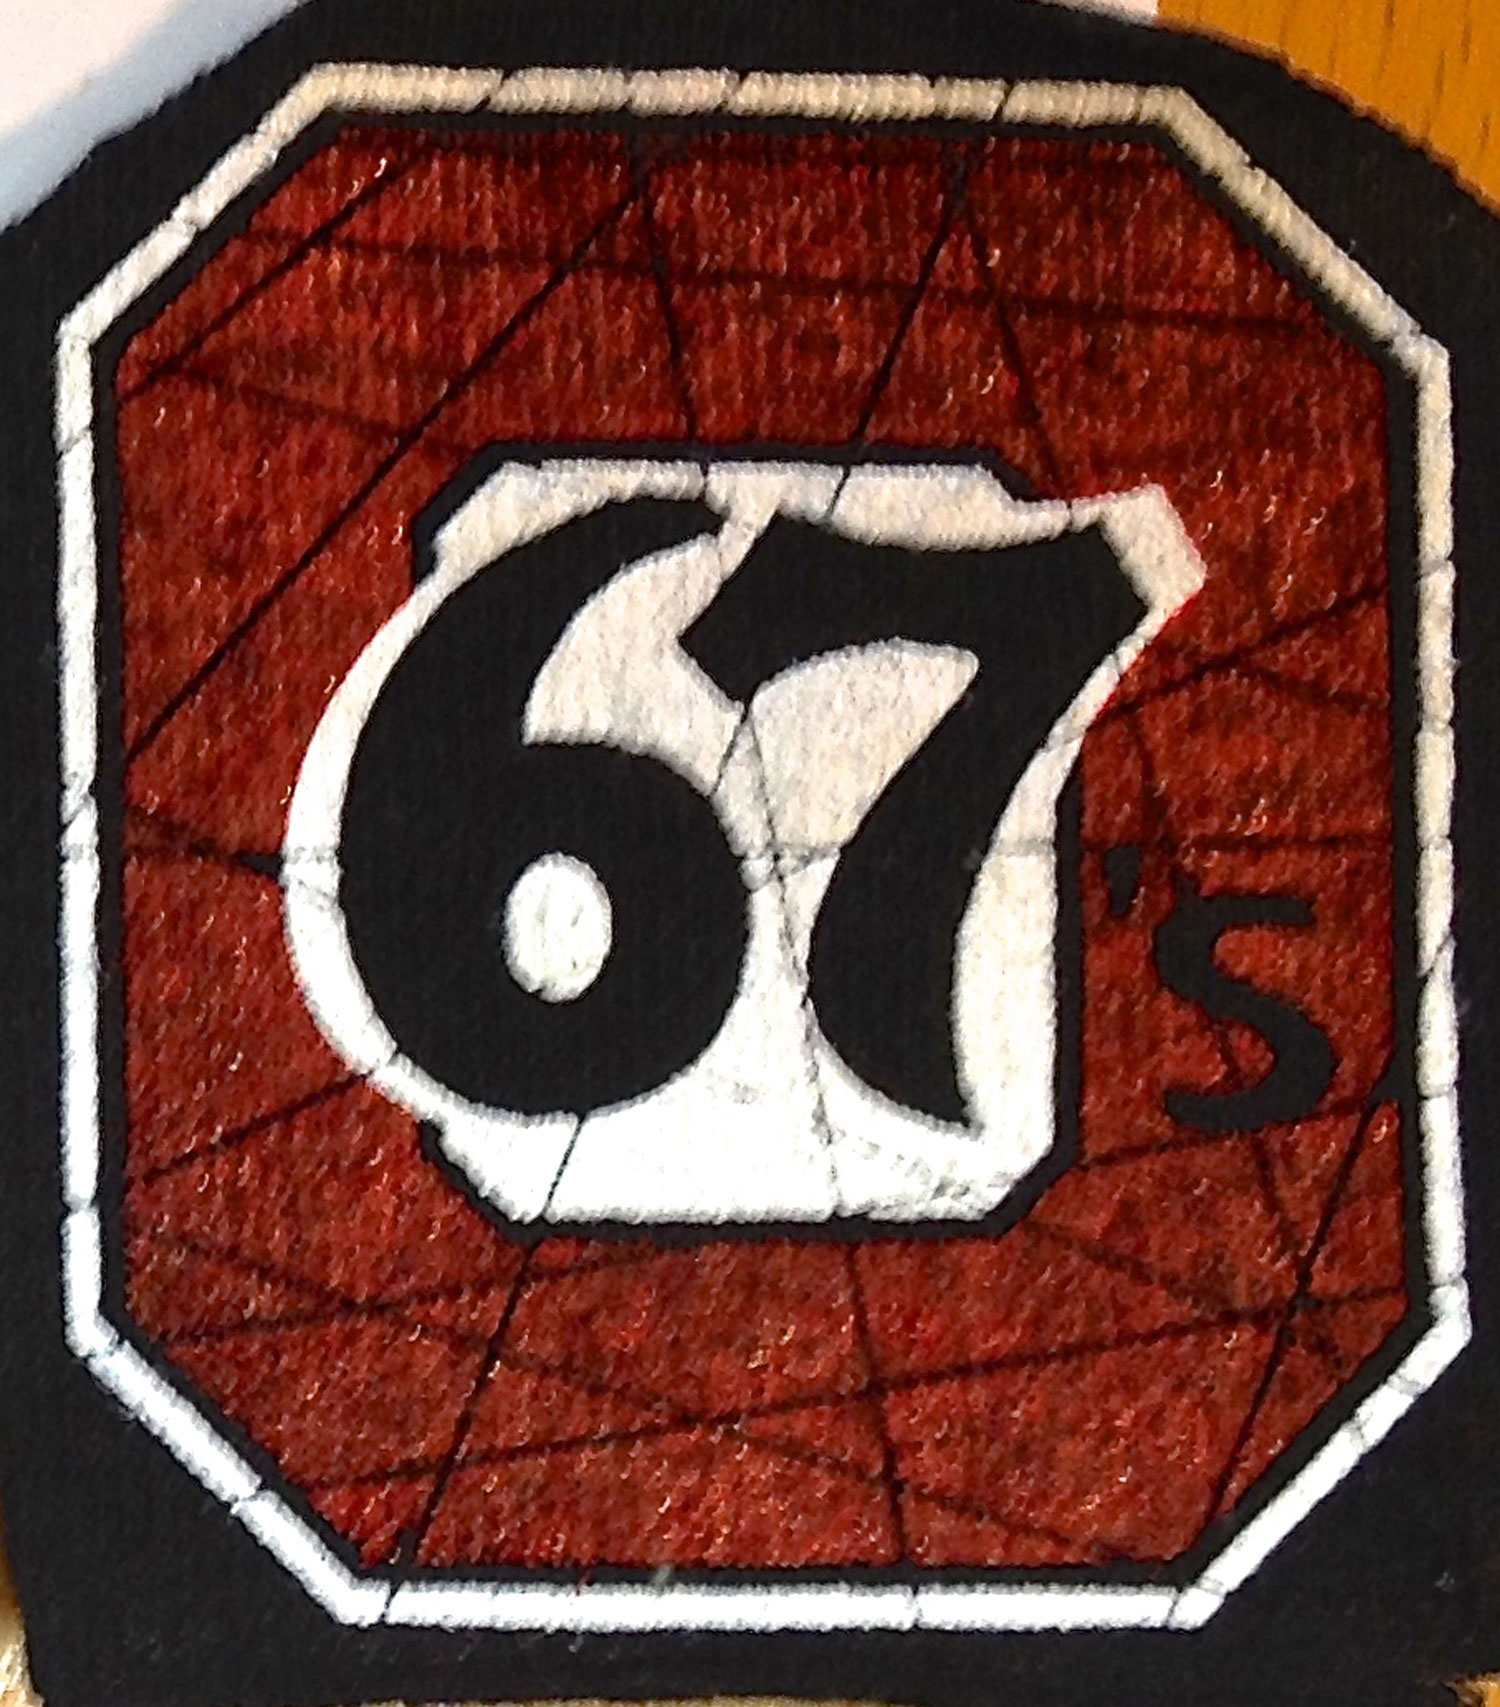 The 67's red is printed directly on the black background.